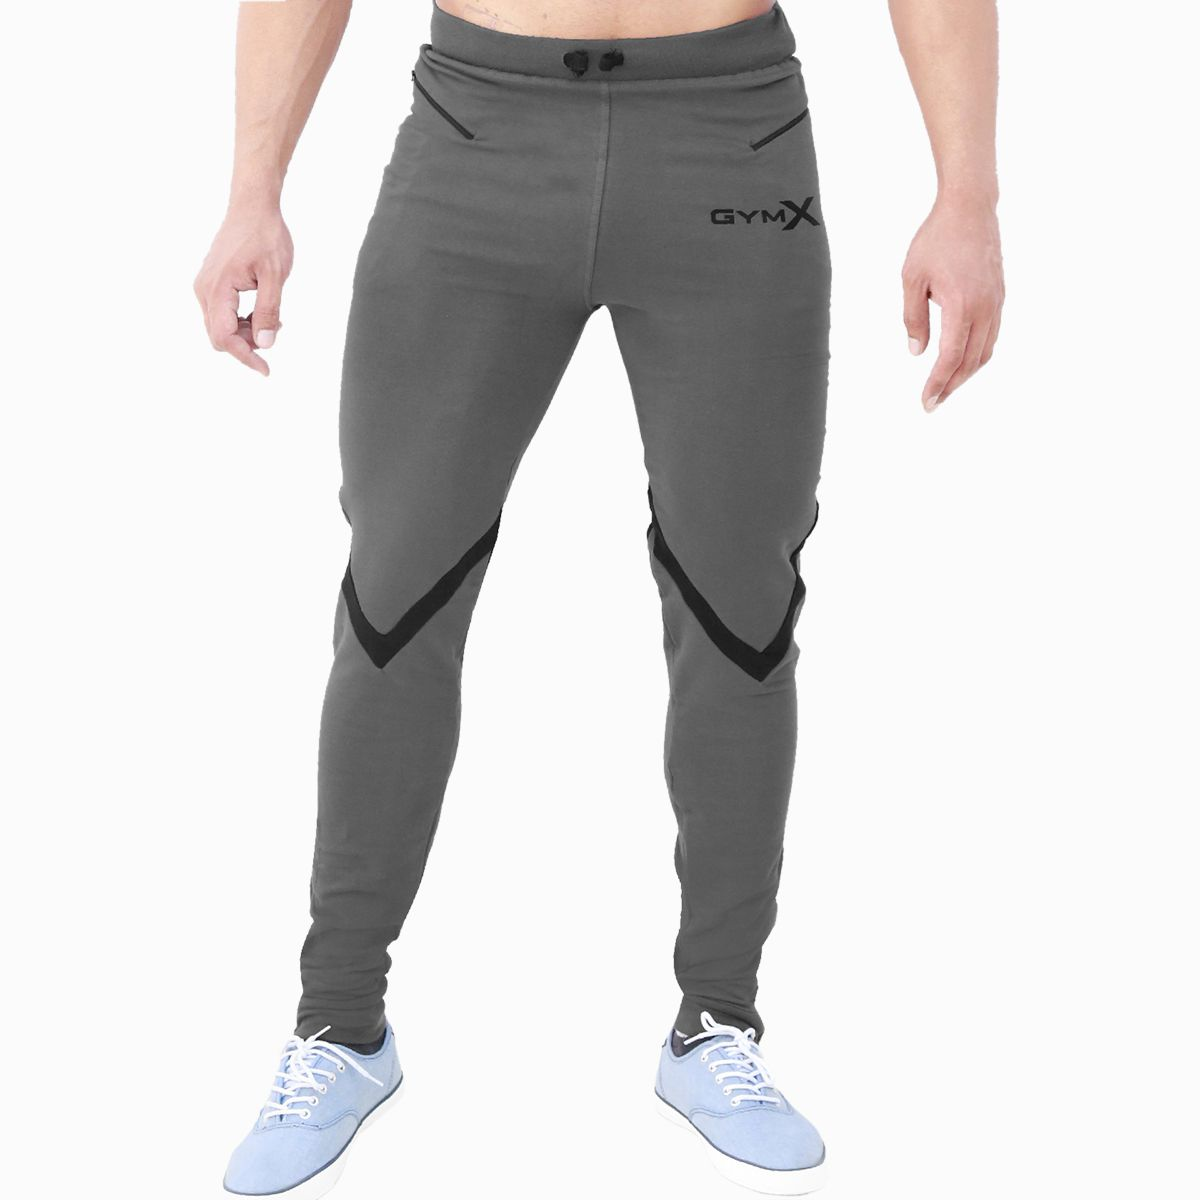 GymX Mens Valour Concrete Grey Sweatpants (Flex Fit)(Size:XX-Large)